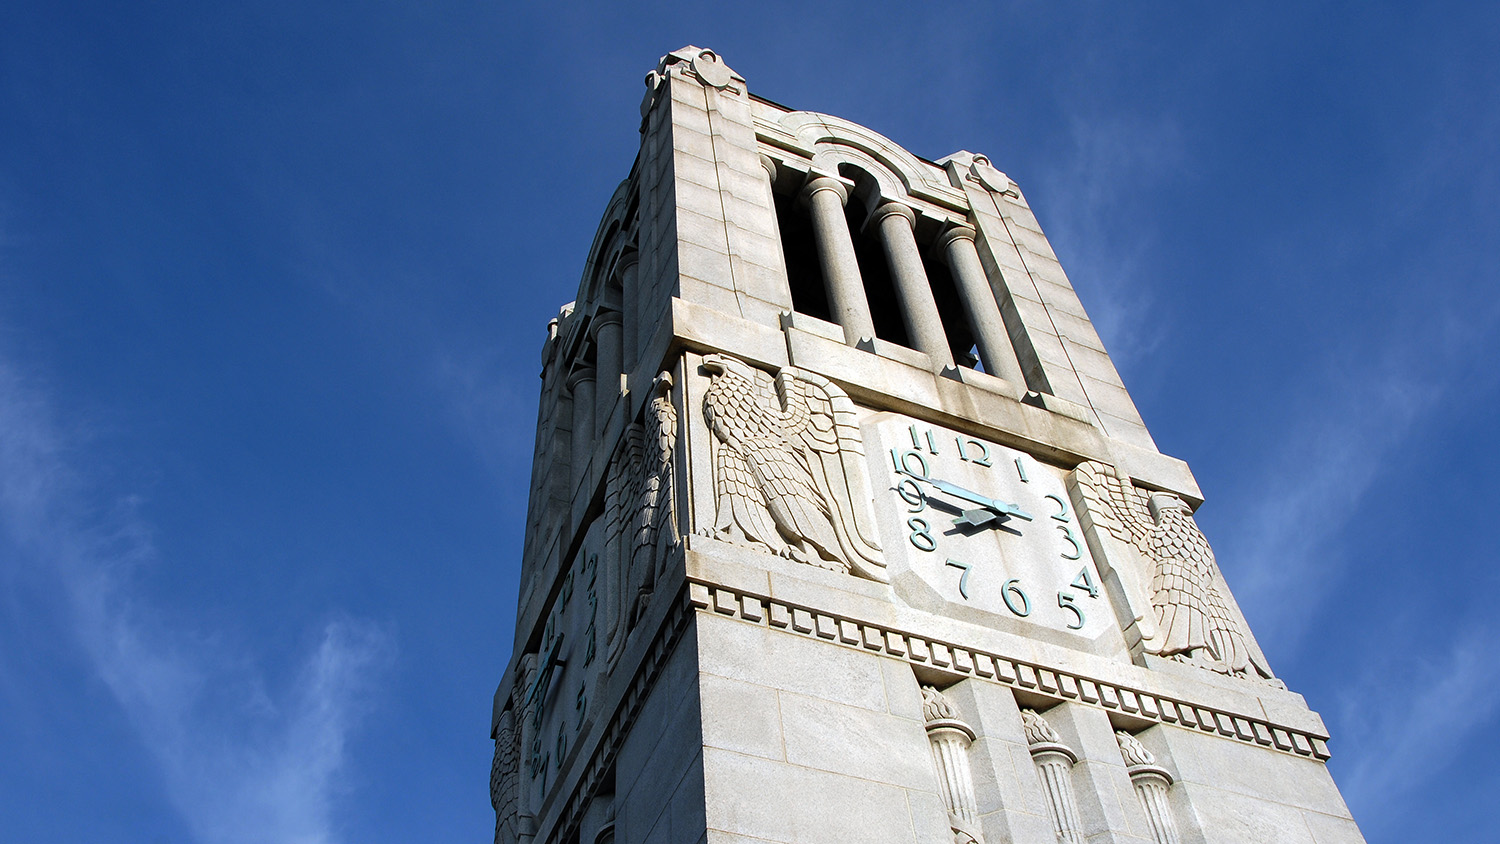 NC State Memorial Belltower